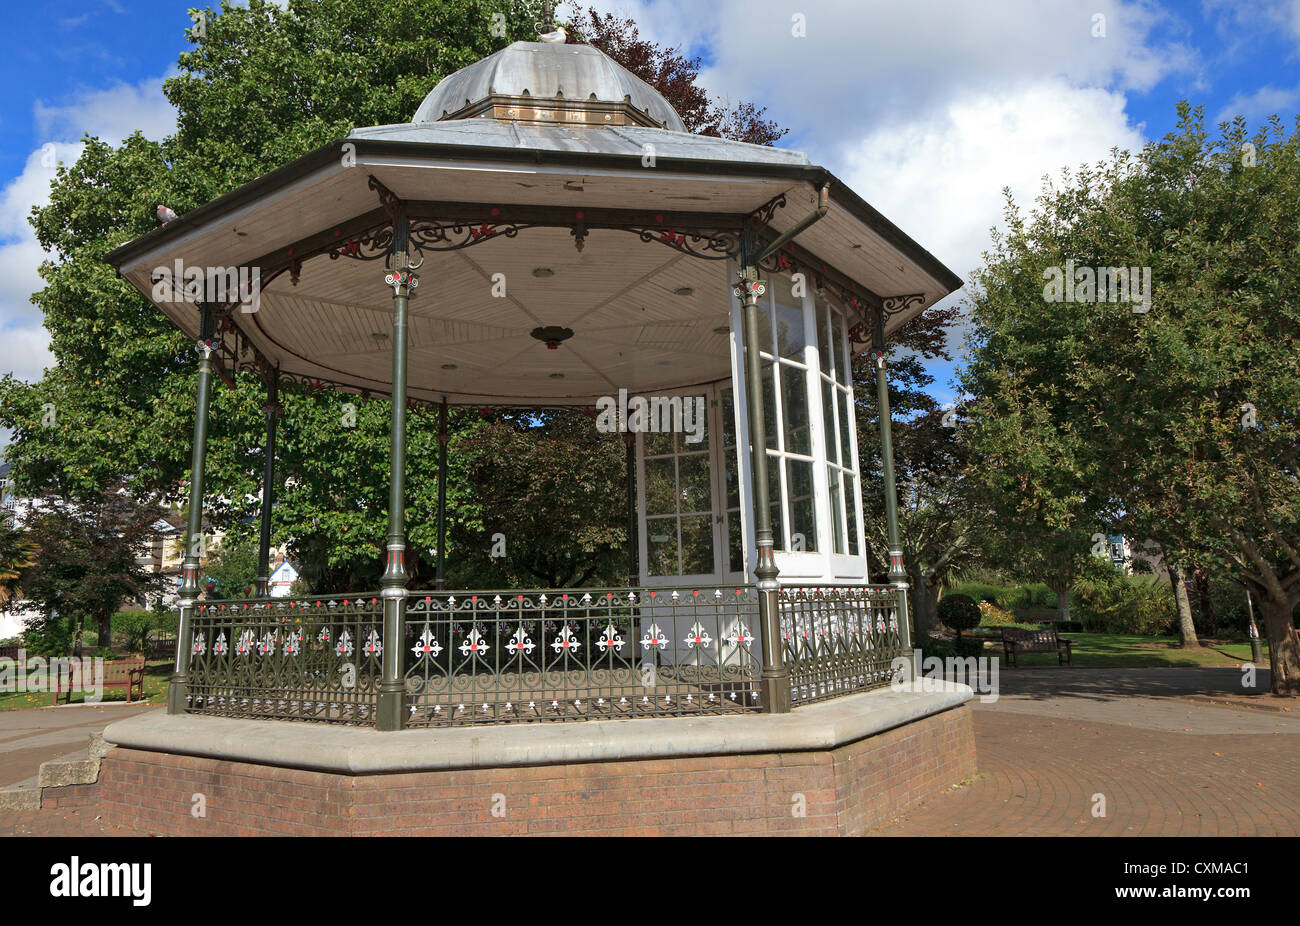 Bandstand in fountain and Dartmouth gardens. - Stock Image